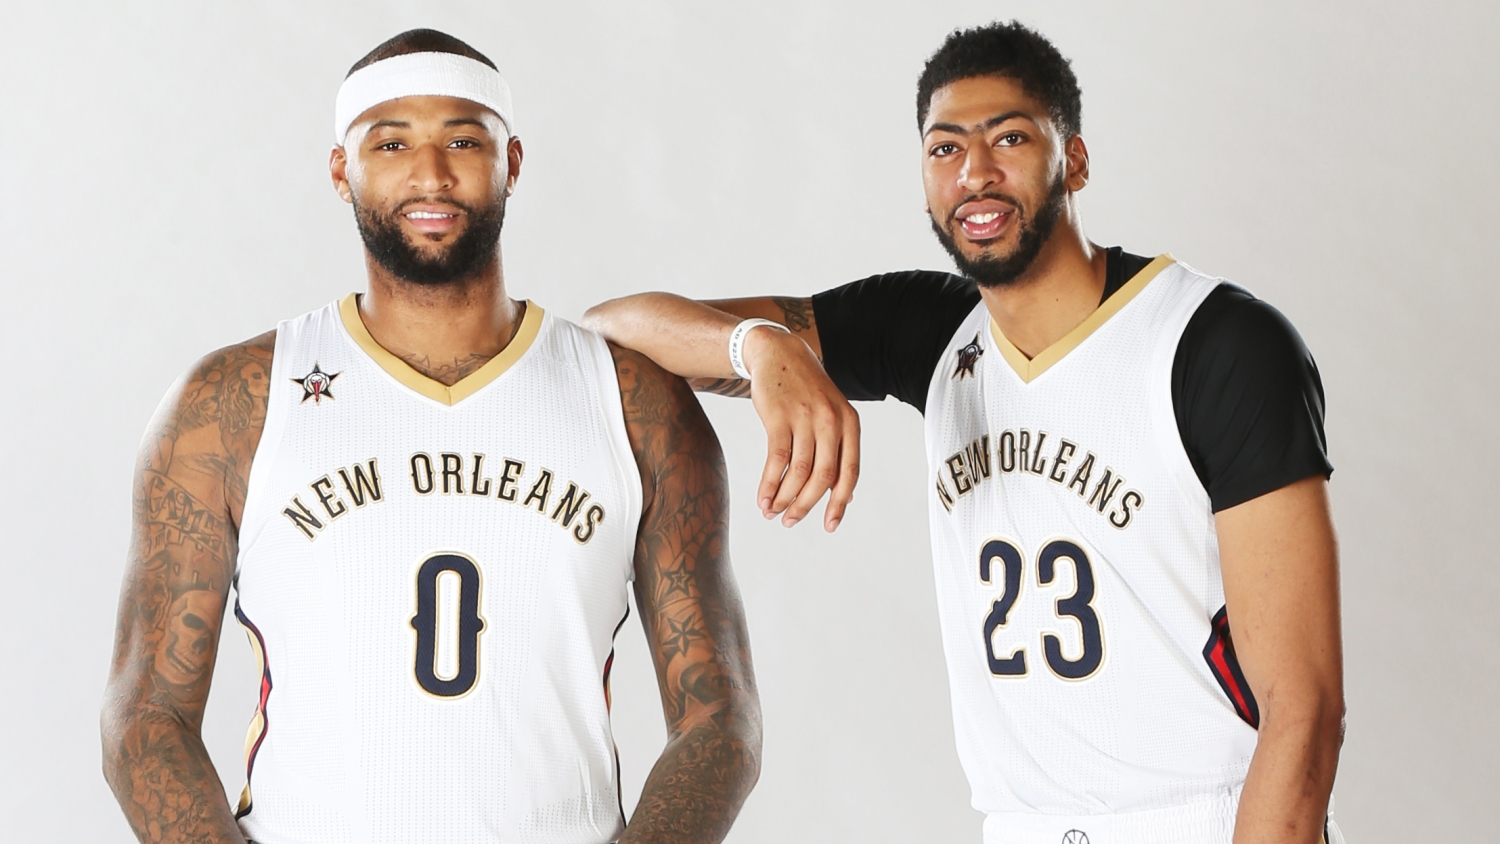 579c97356 New Orleans Pelicans portraits. DeMarcus Cousins  0 and Anthony Davis ...